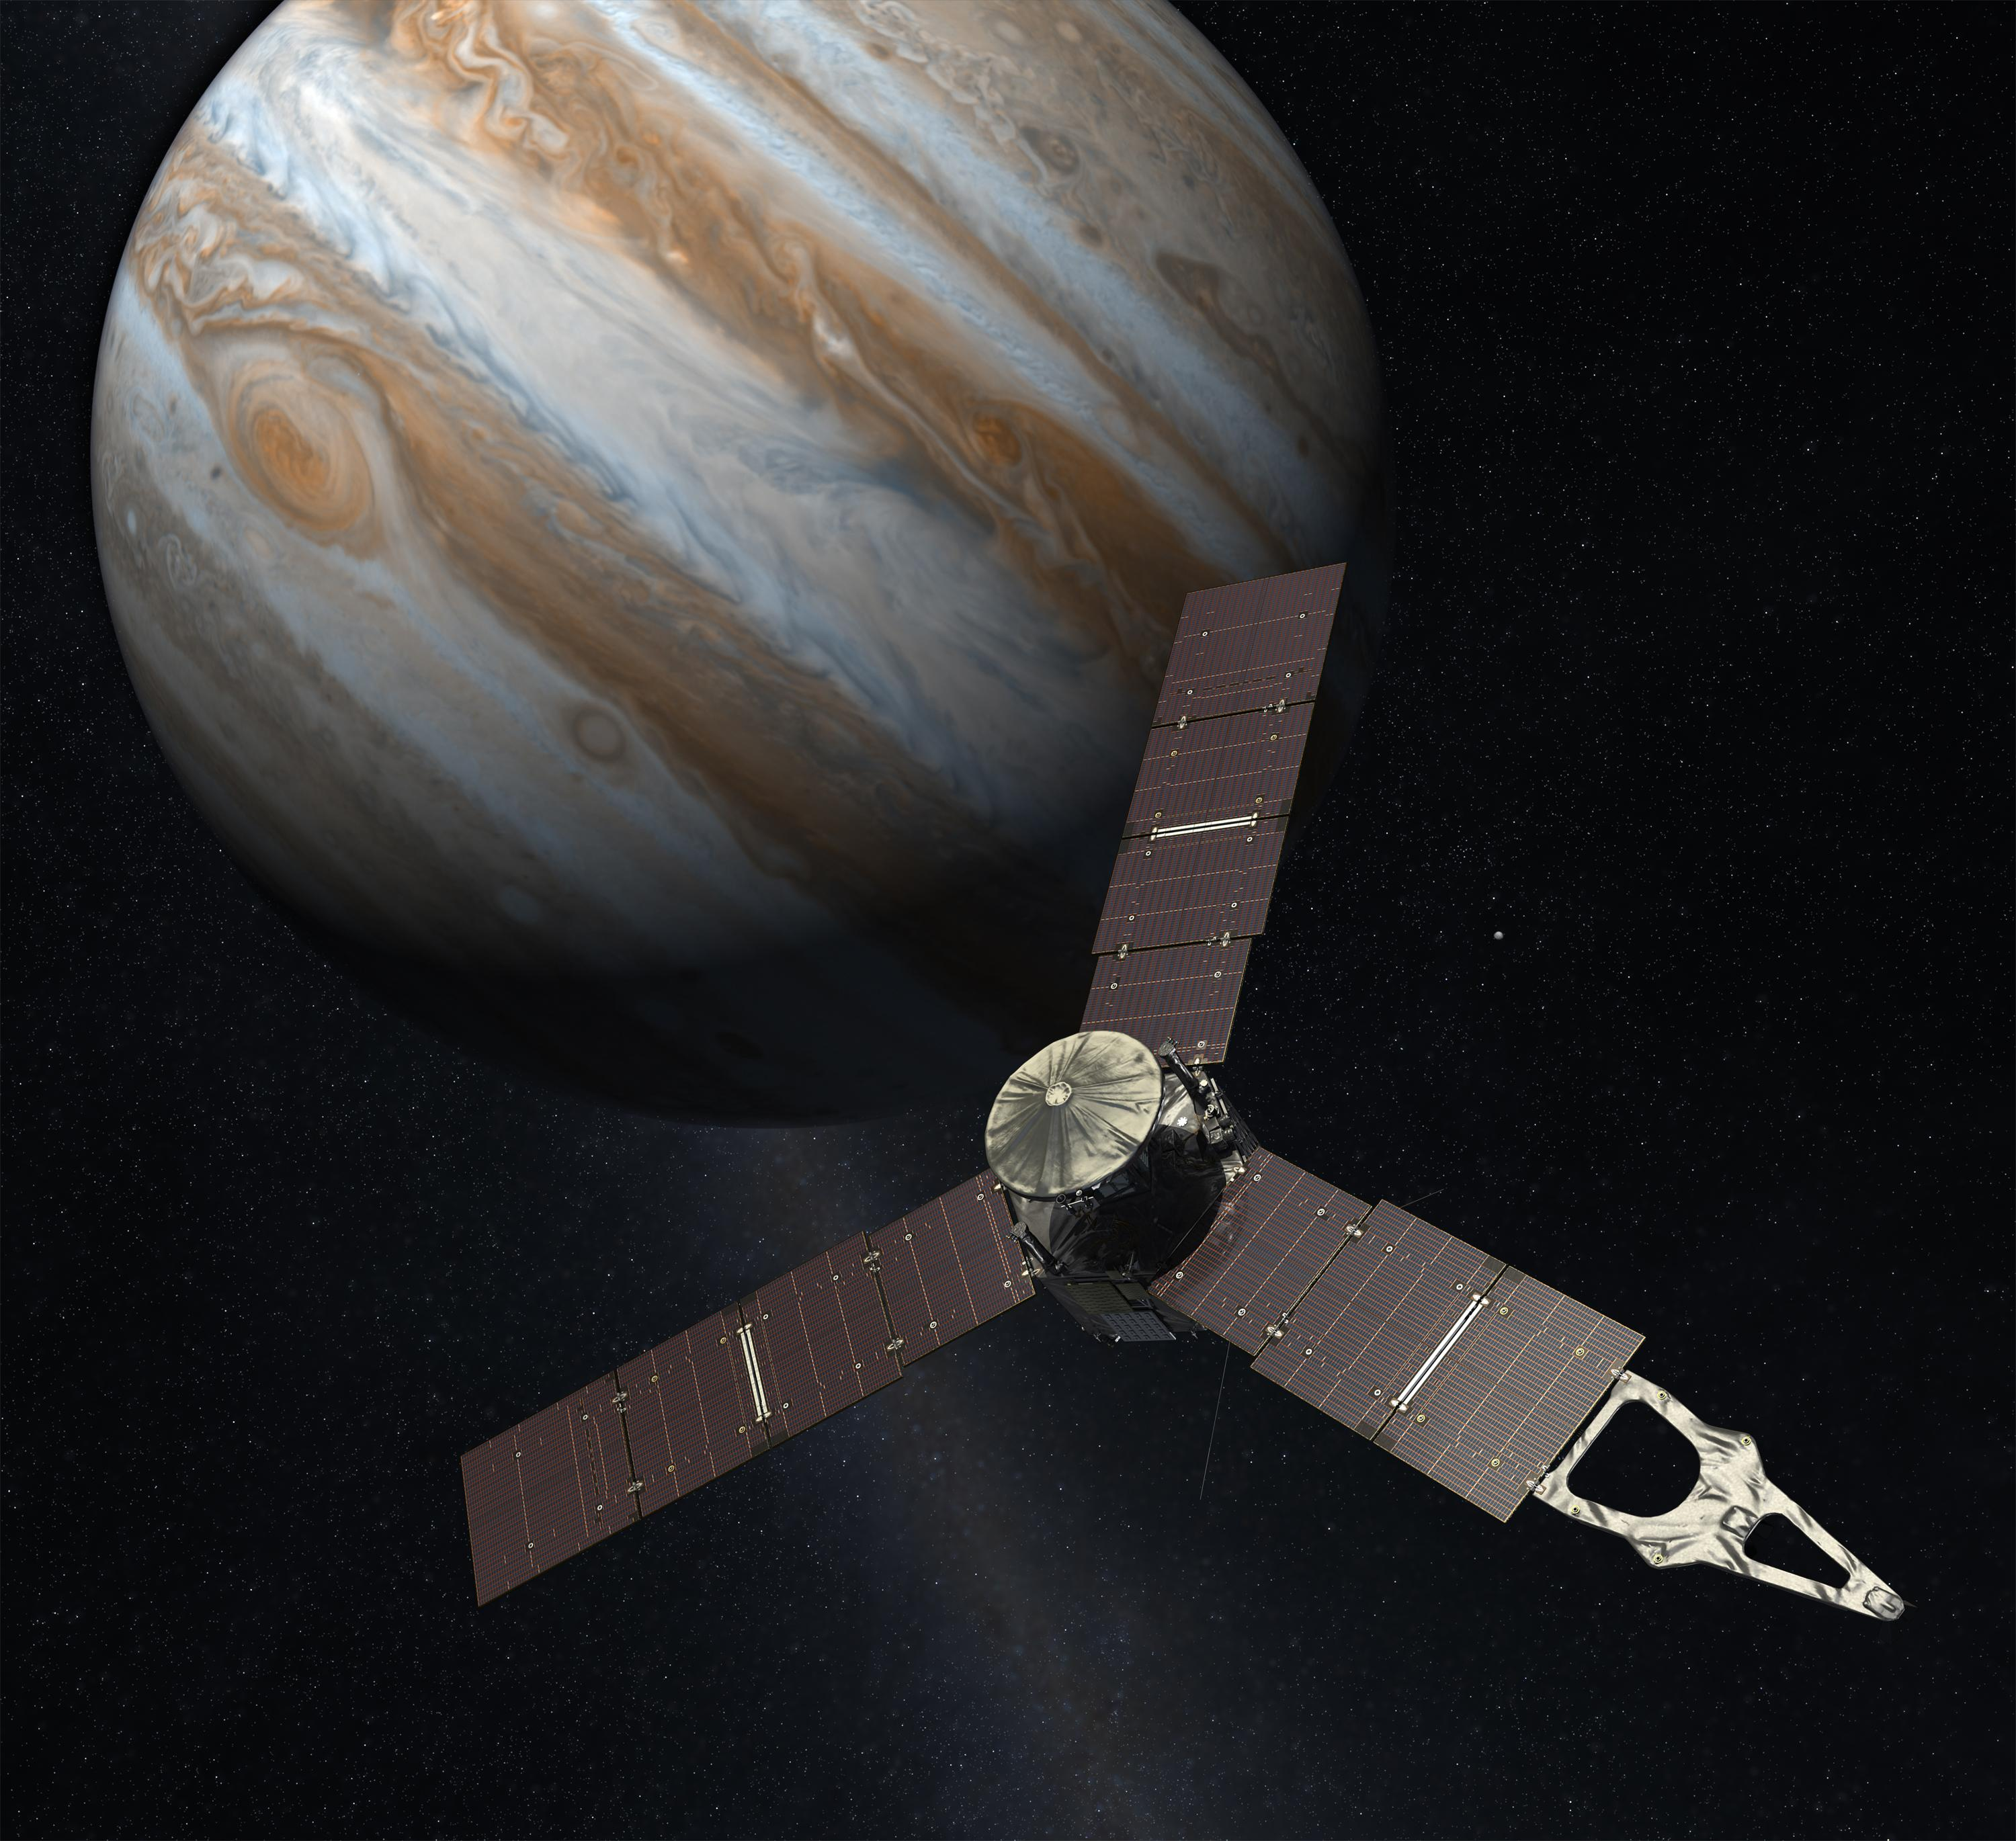 An artist's rendering of Juno approaching Jupiter. Credit: NASA/JPL-Caltech